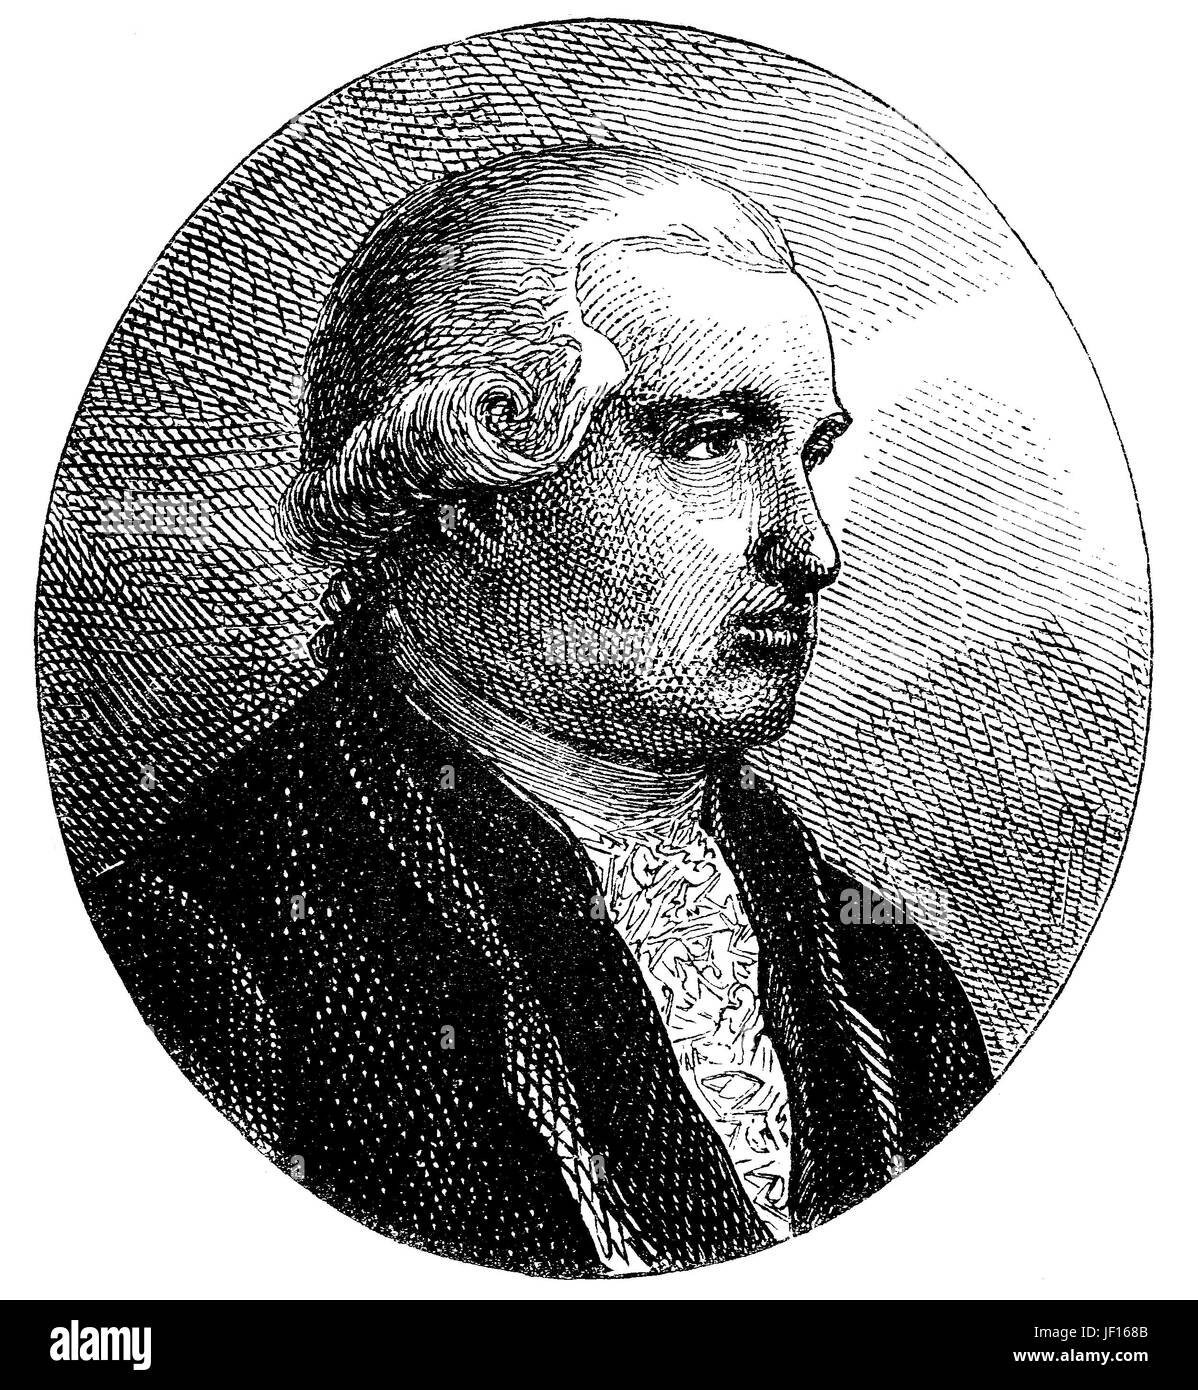 Mayer Amschel Rothschild, written also Anschel, 1744 - 1812, was a German Jewish banker and the founder of the Rothschild - Stock Image